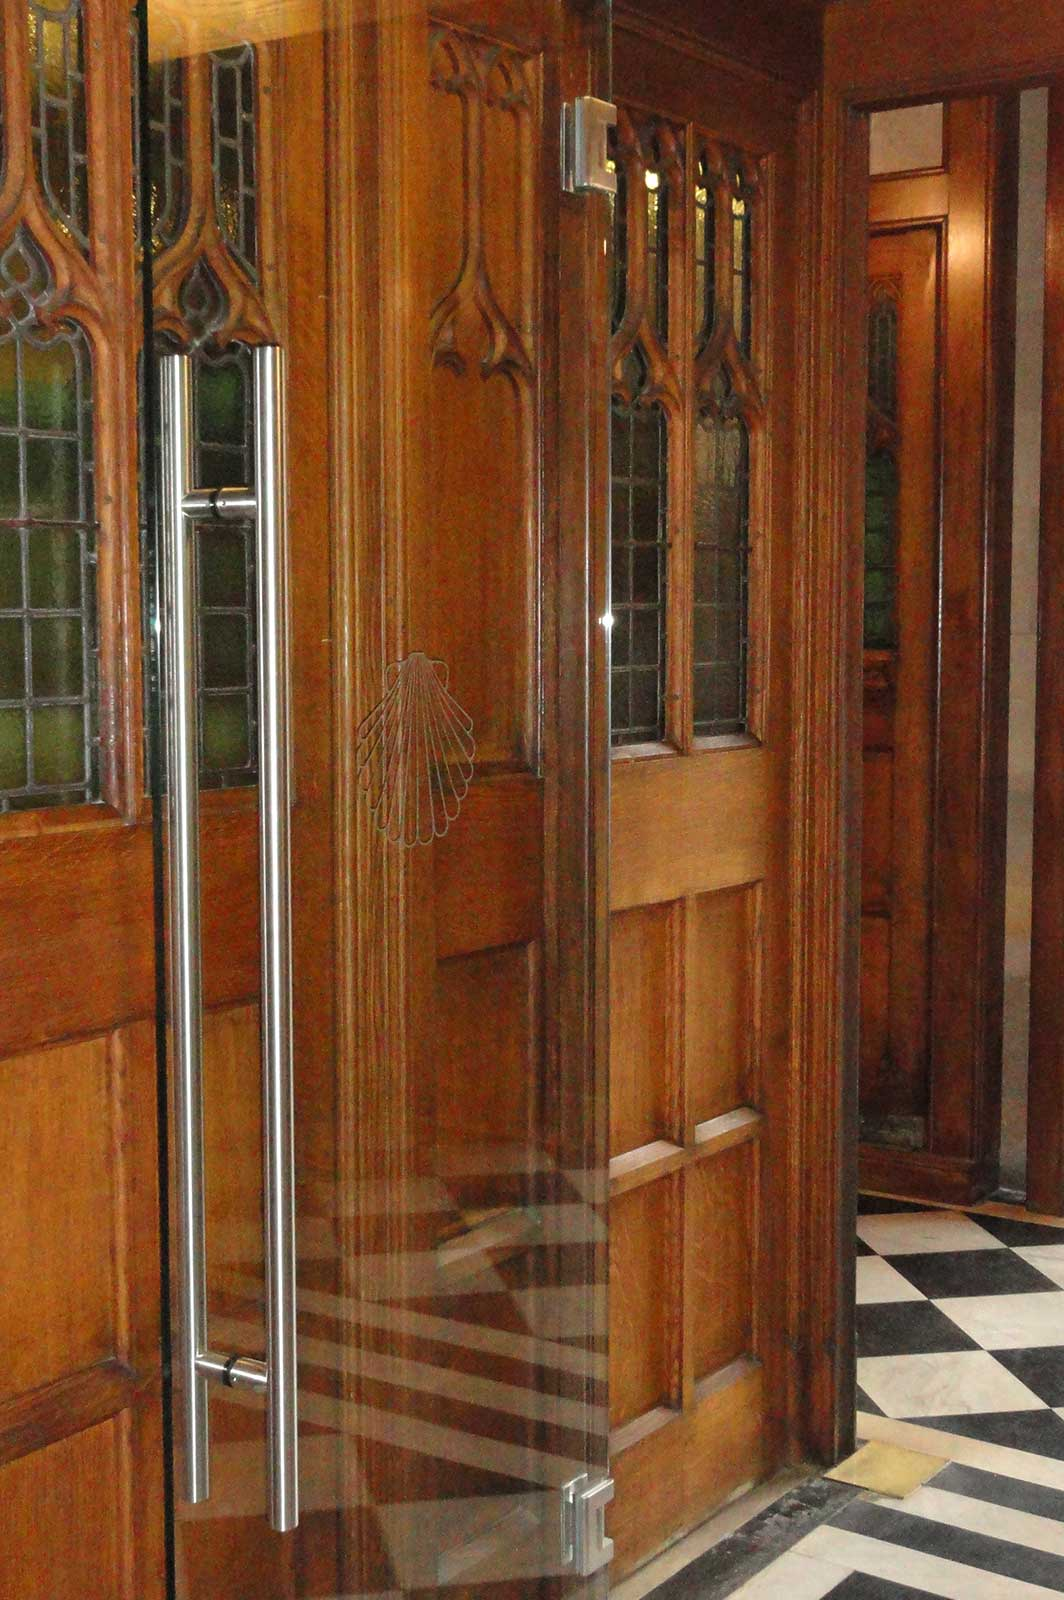 Bespoke Glass Door set into Original Wooden Frame